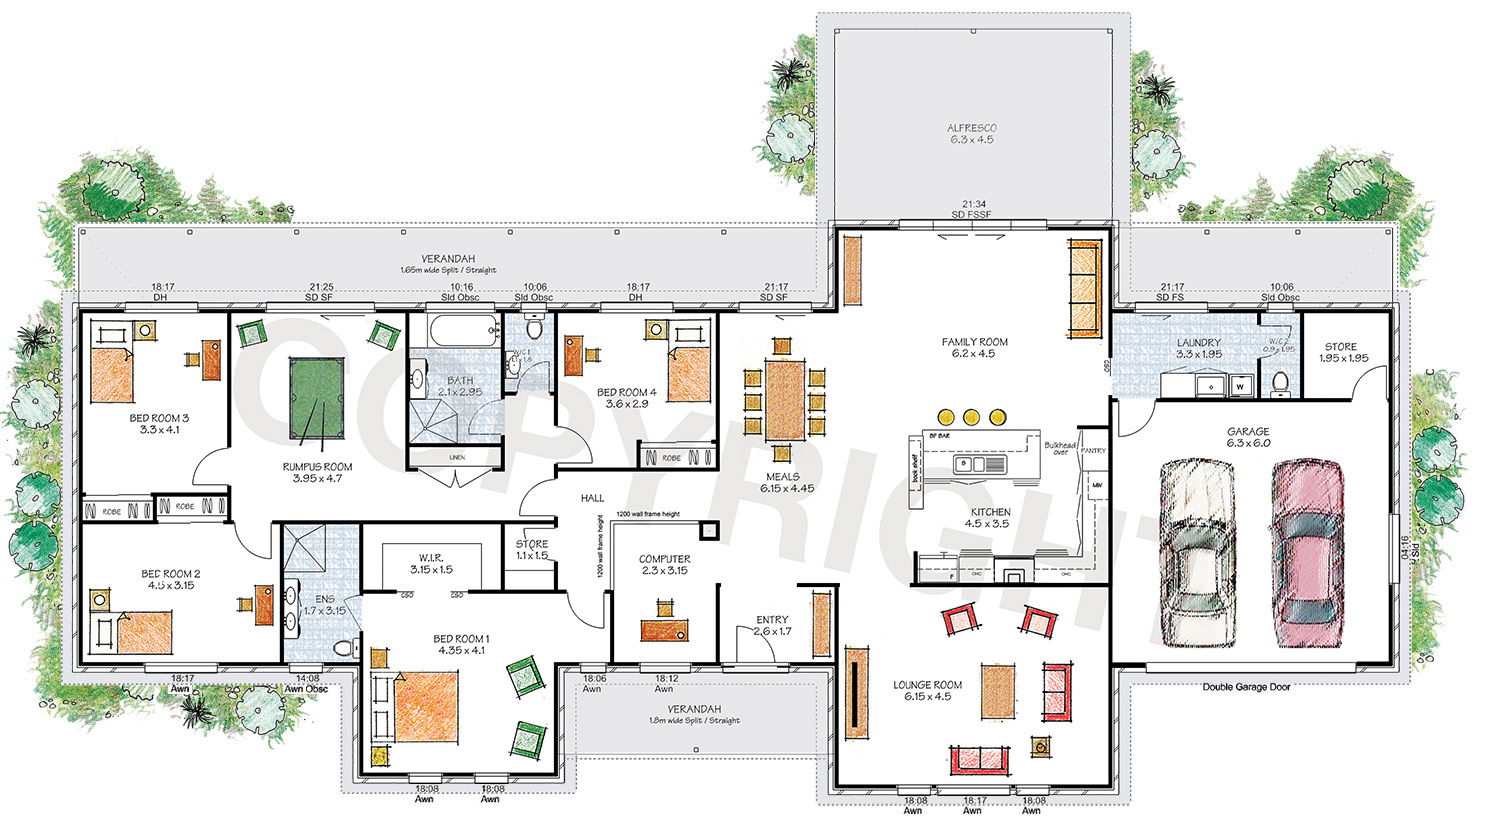 The Stanthorpe floor plan